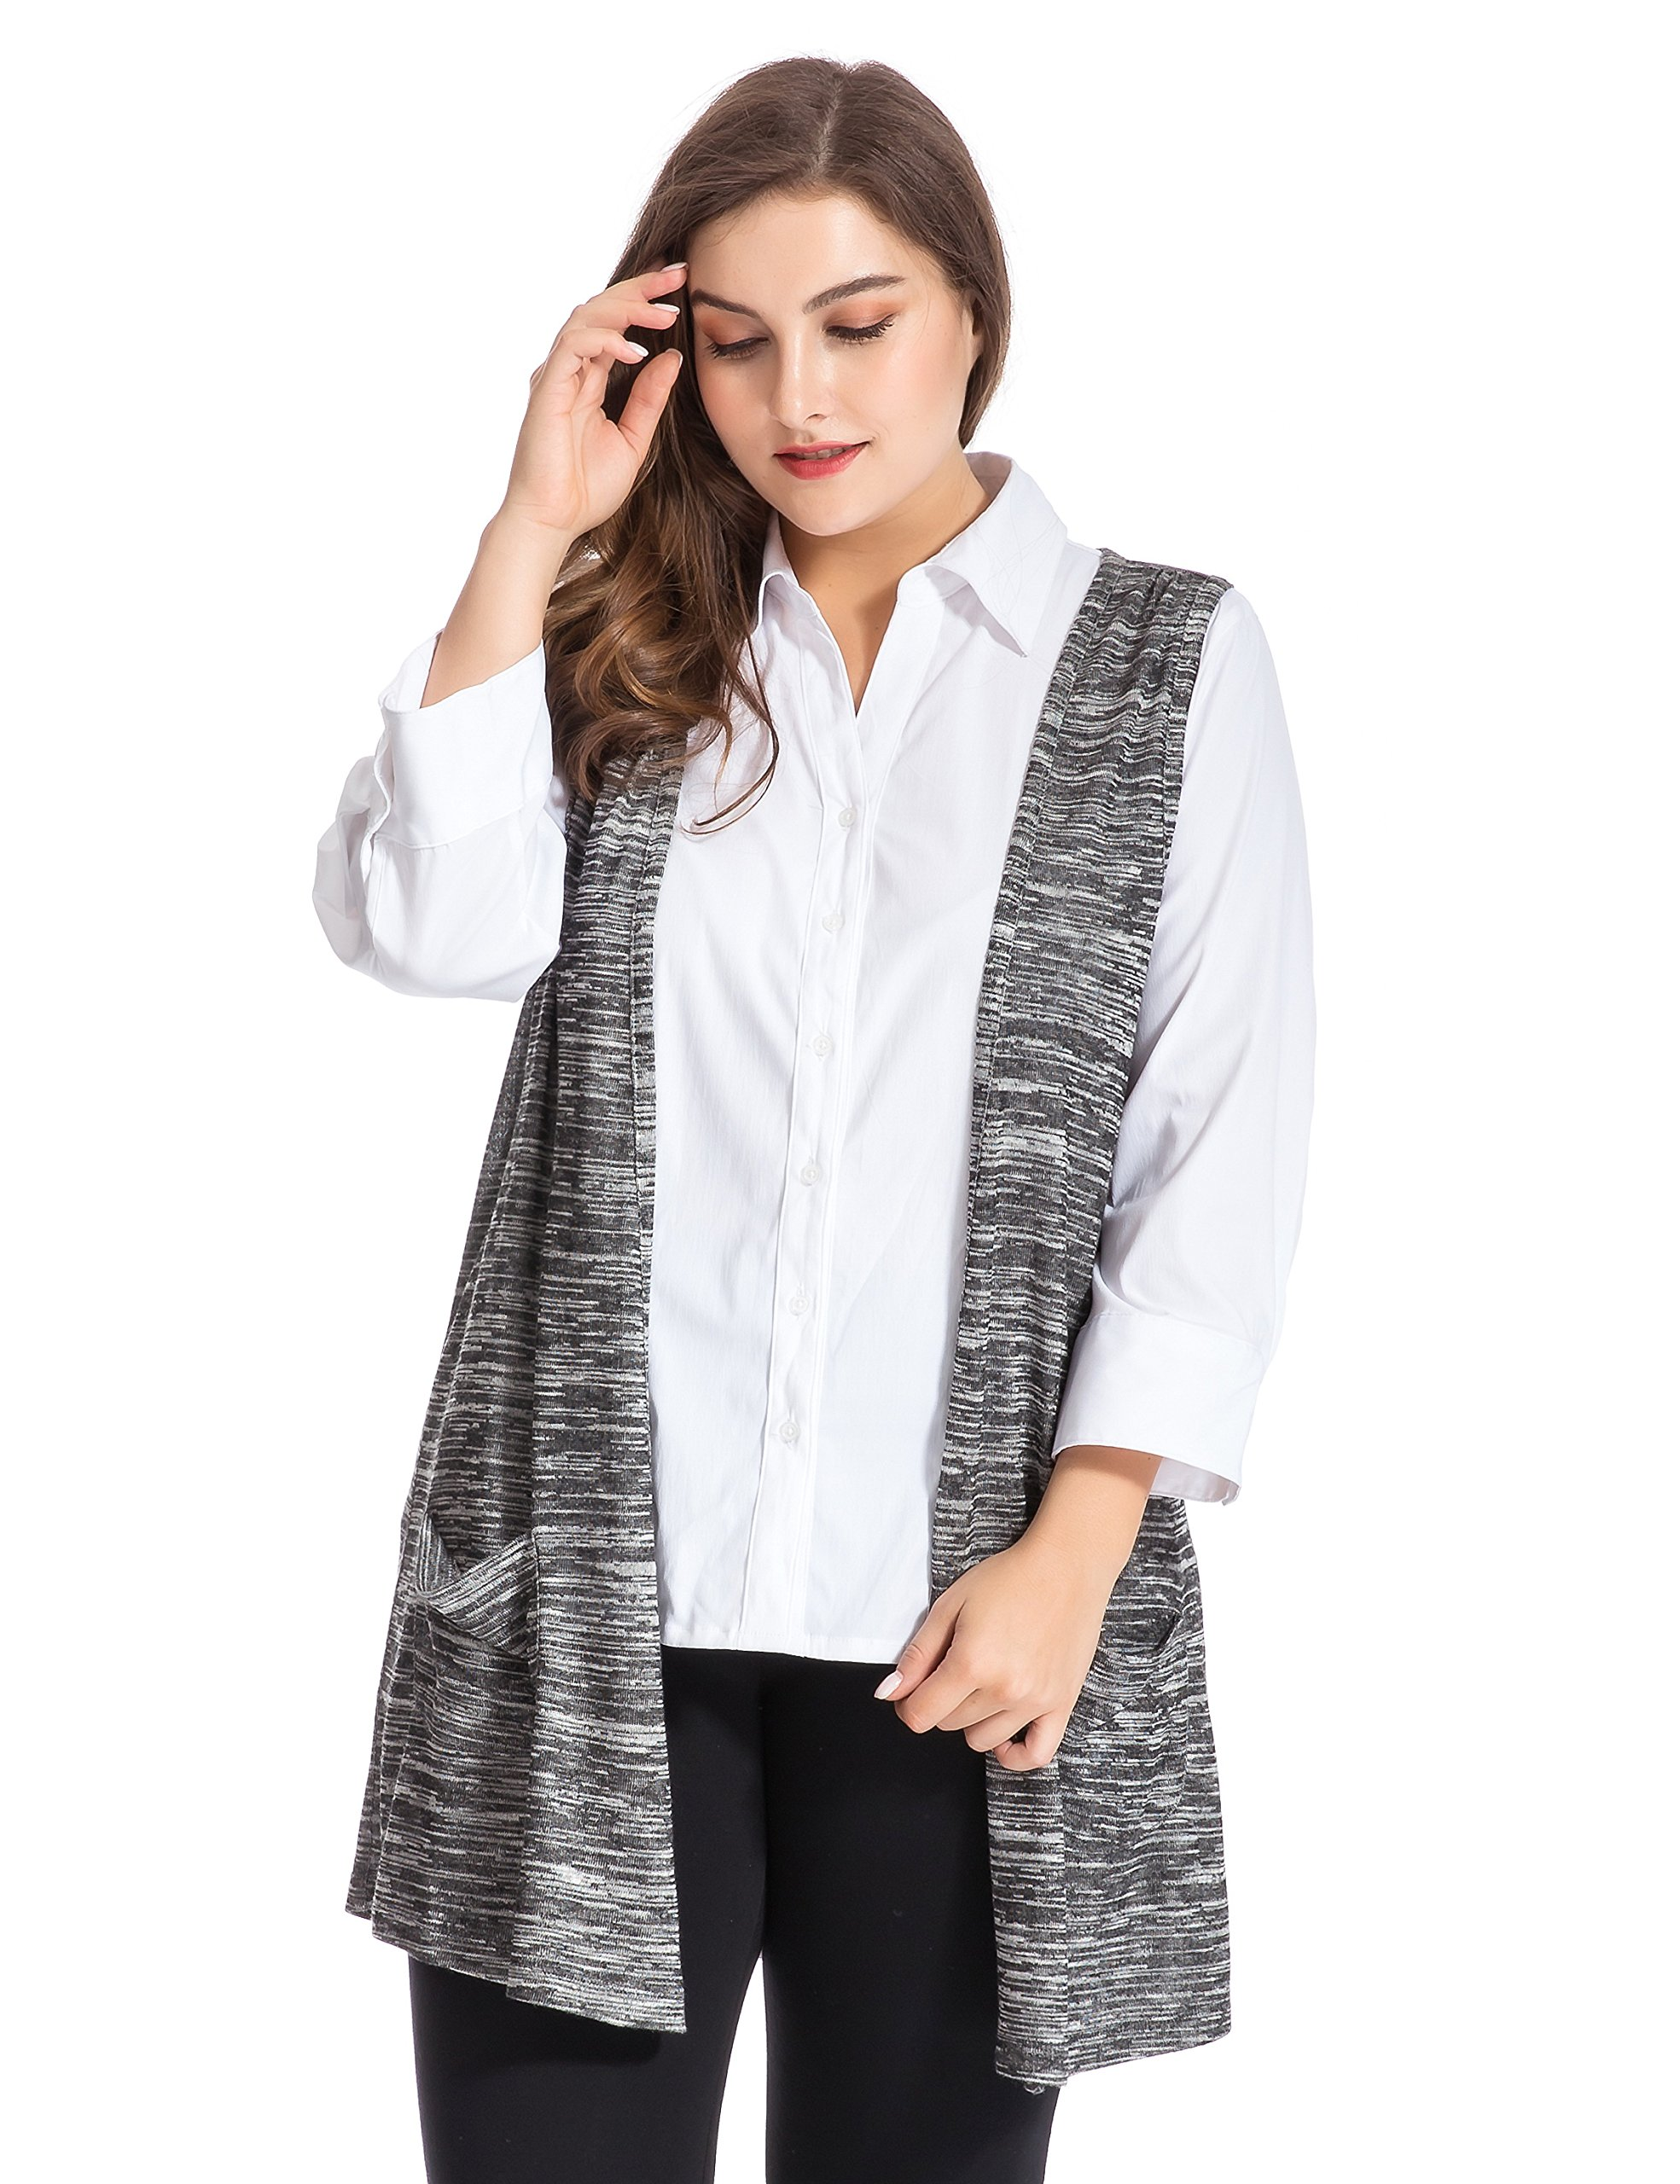 Chicwe Women's Plus Size Melange Knit Cardigan Style Vest Jacket with Pockets 16